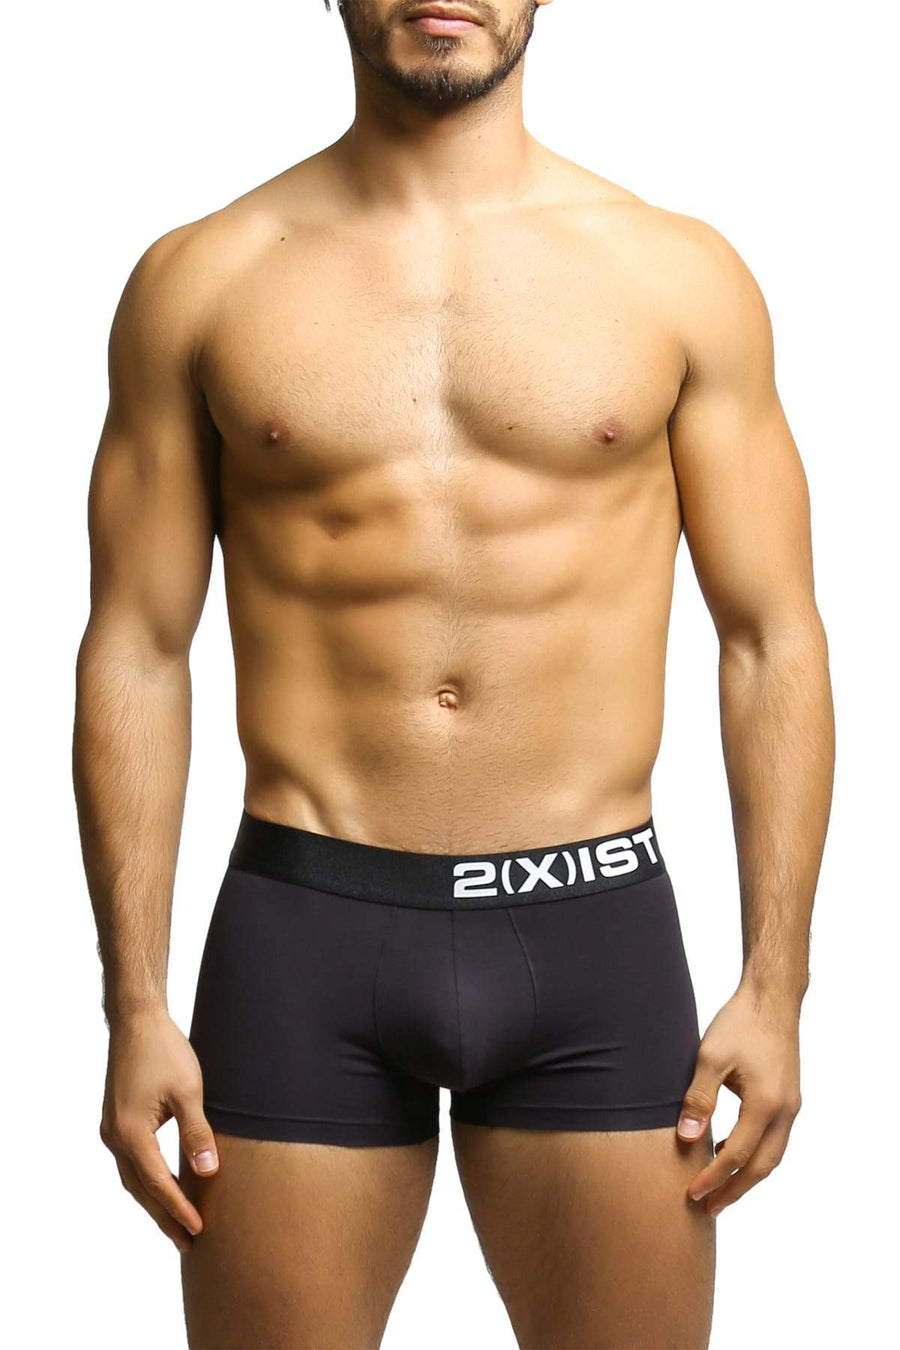 Trunks - 2(X)IST Black Electric Cotton Stretch Trunk -   jetcube